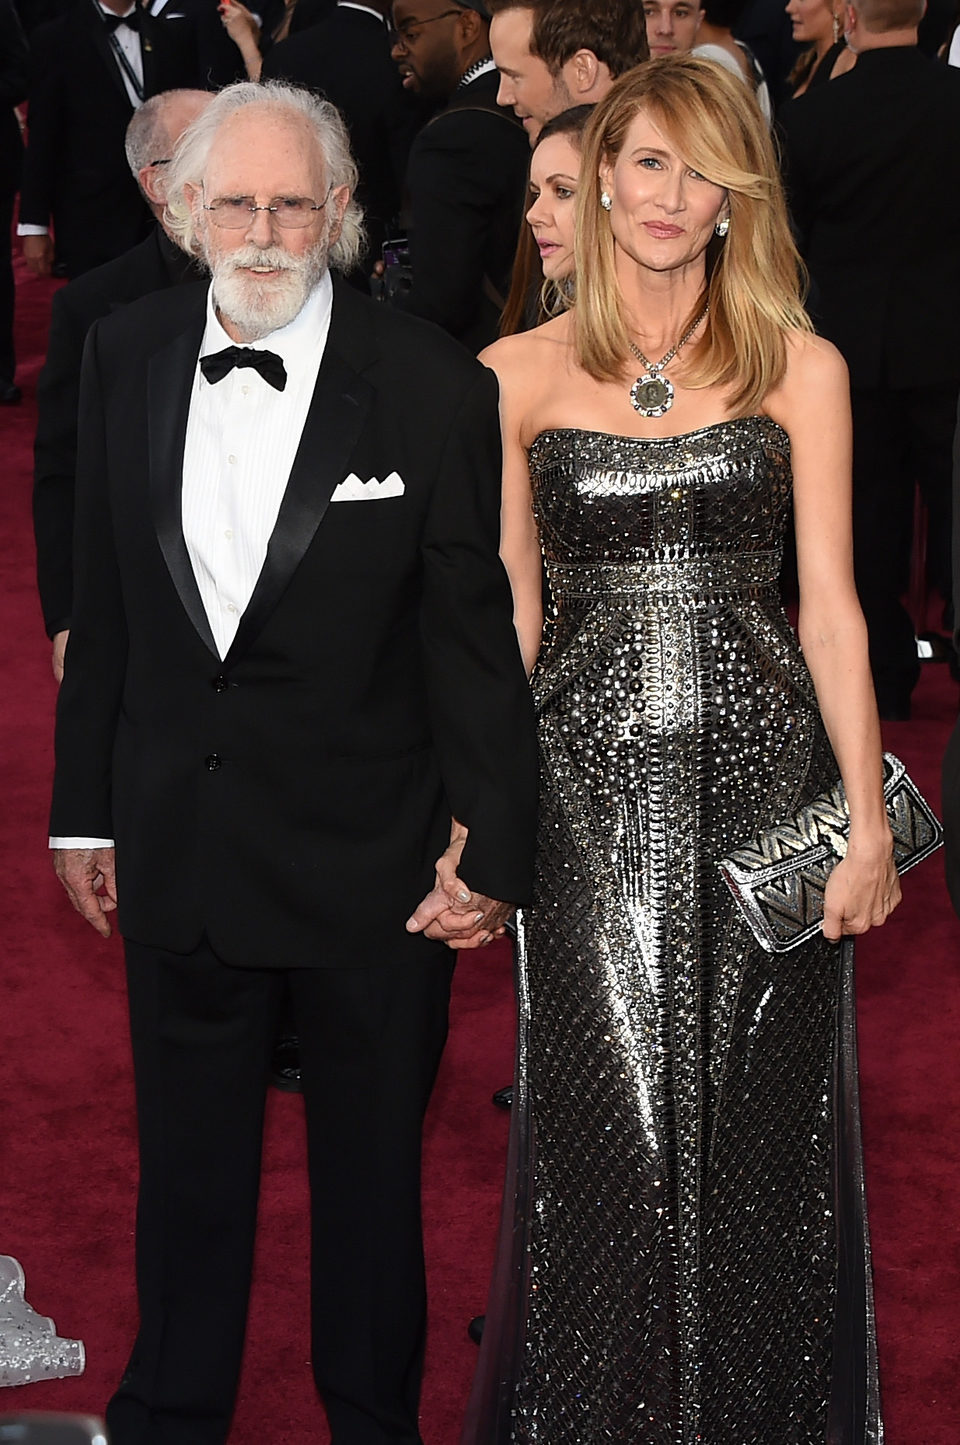 Bruce and Laura Dern poss in the Oscar 2015 red carpet